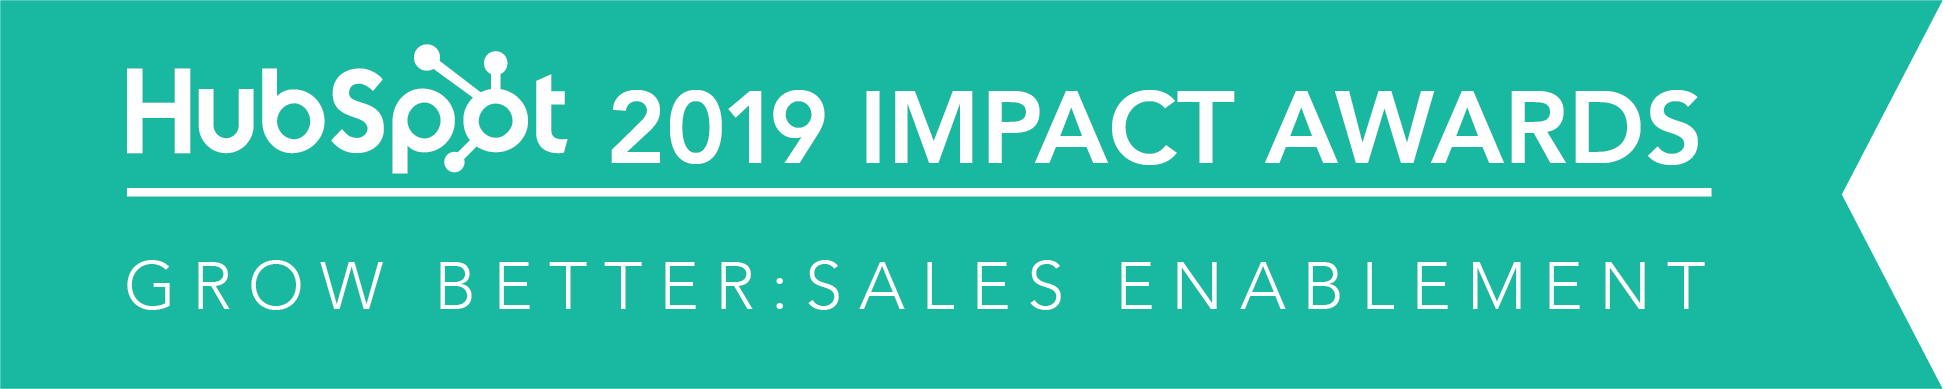 Hubspot_ImpactAwards_2019_SalesEnablement-02 (3)